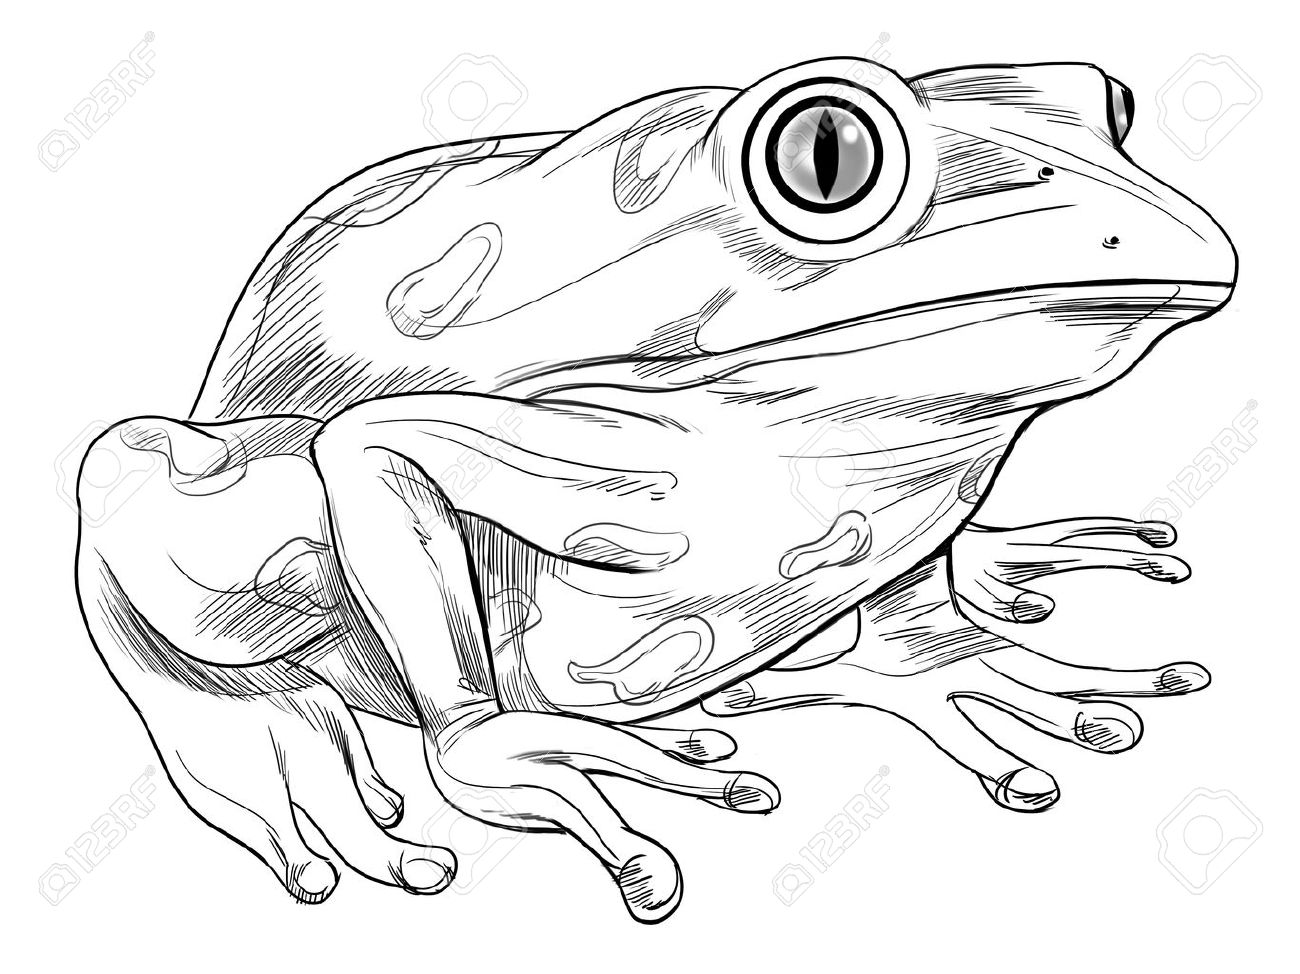 black and white sketch of a frog stock vector 16771568 - Picture Of A Frog